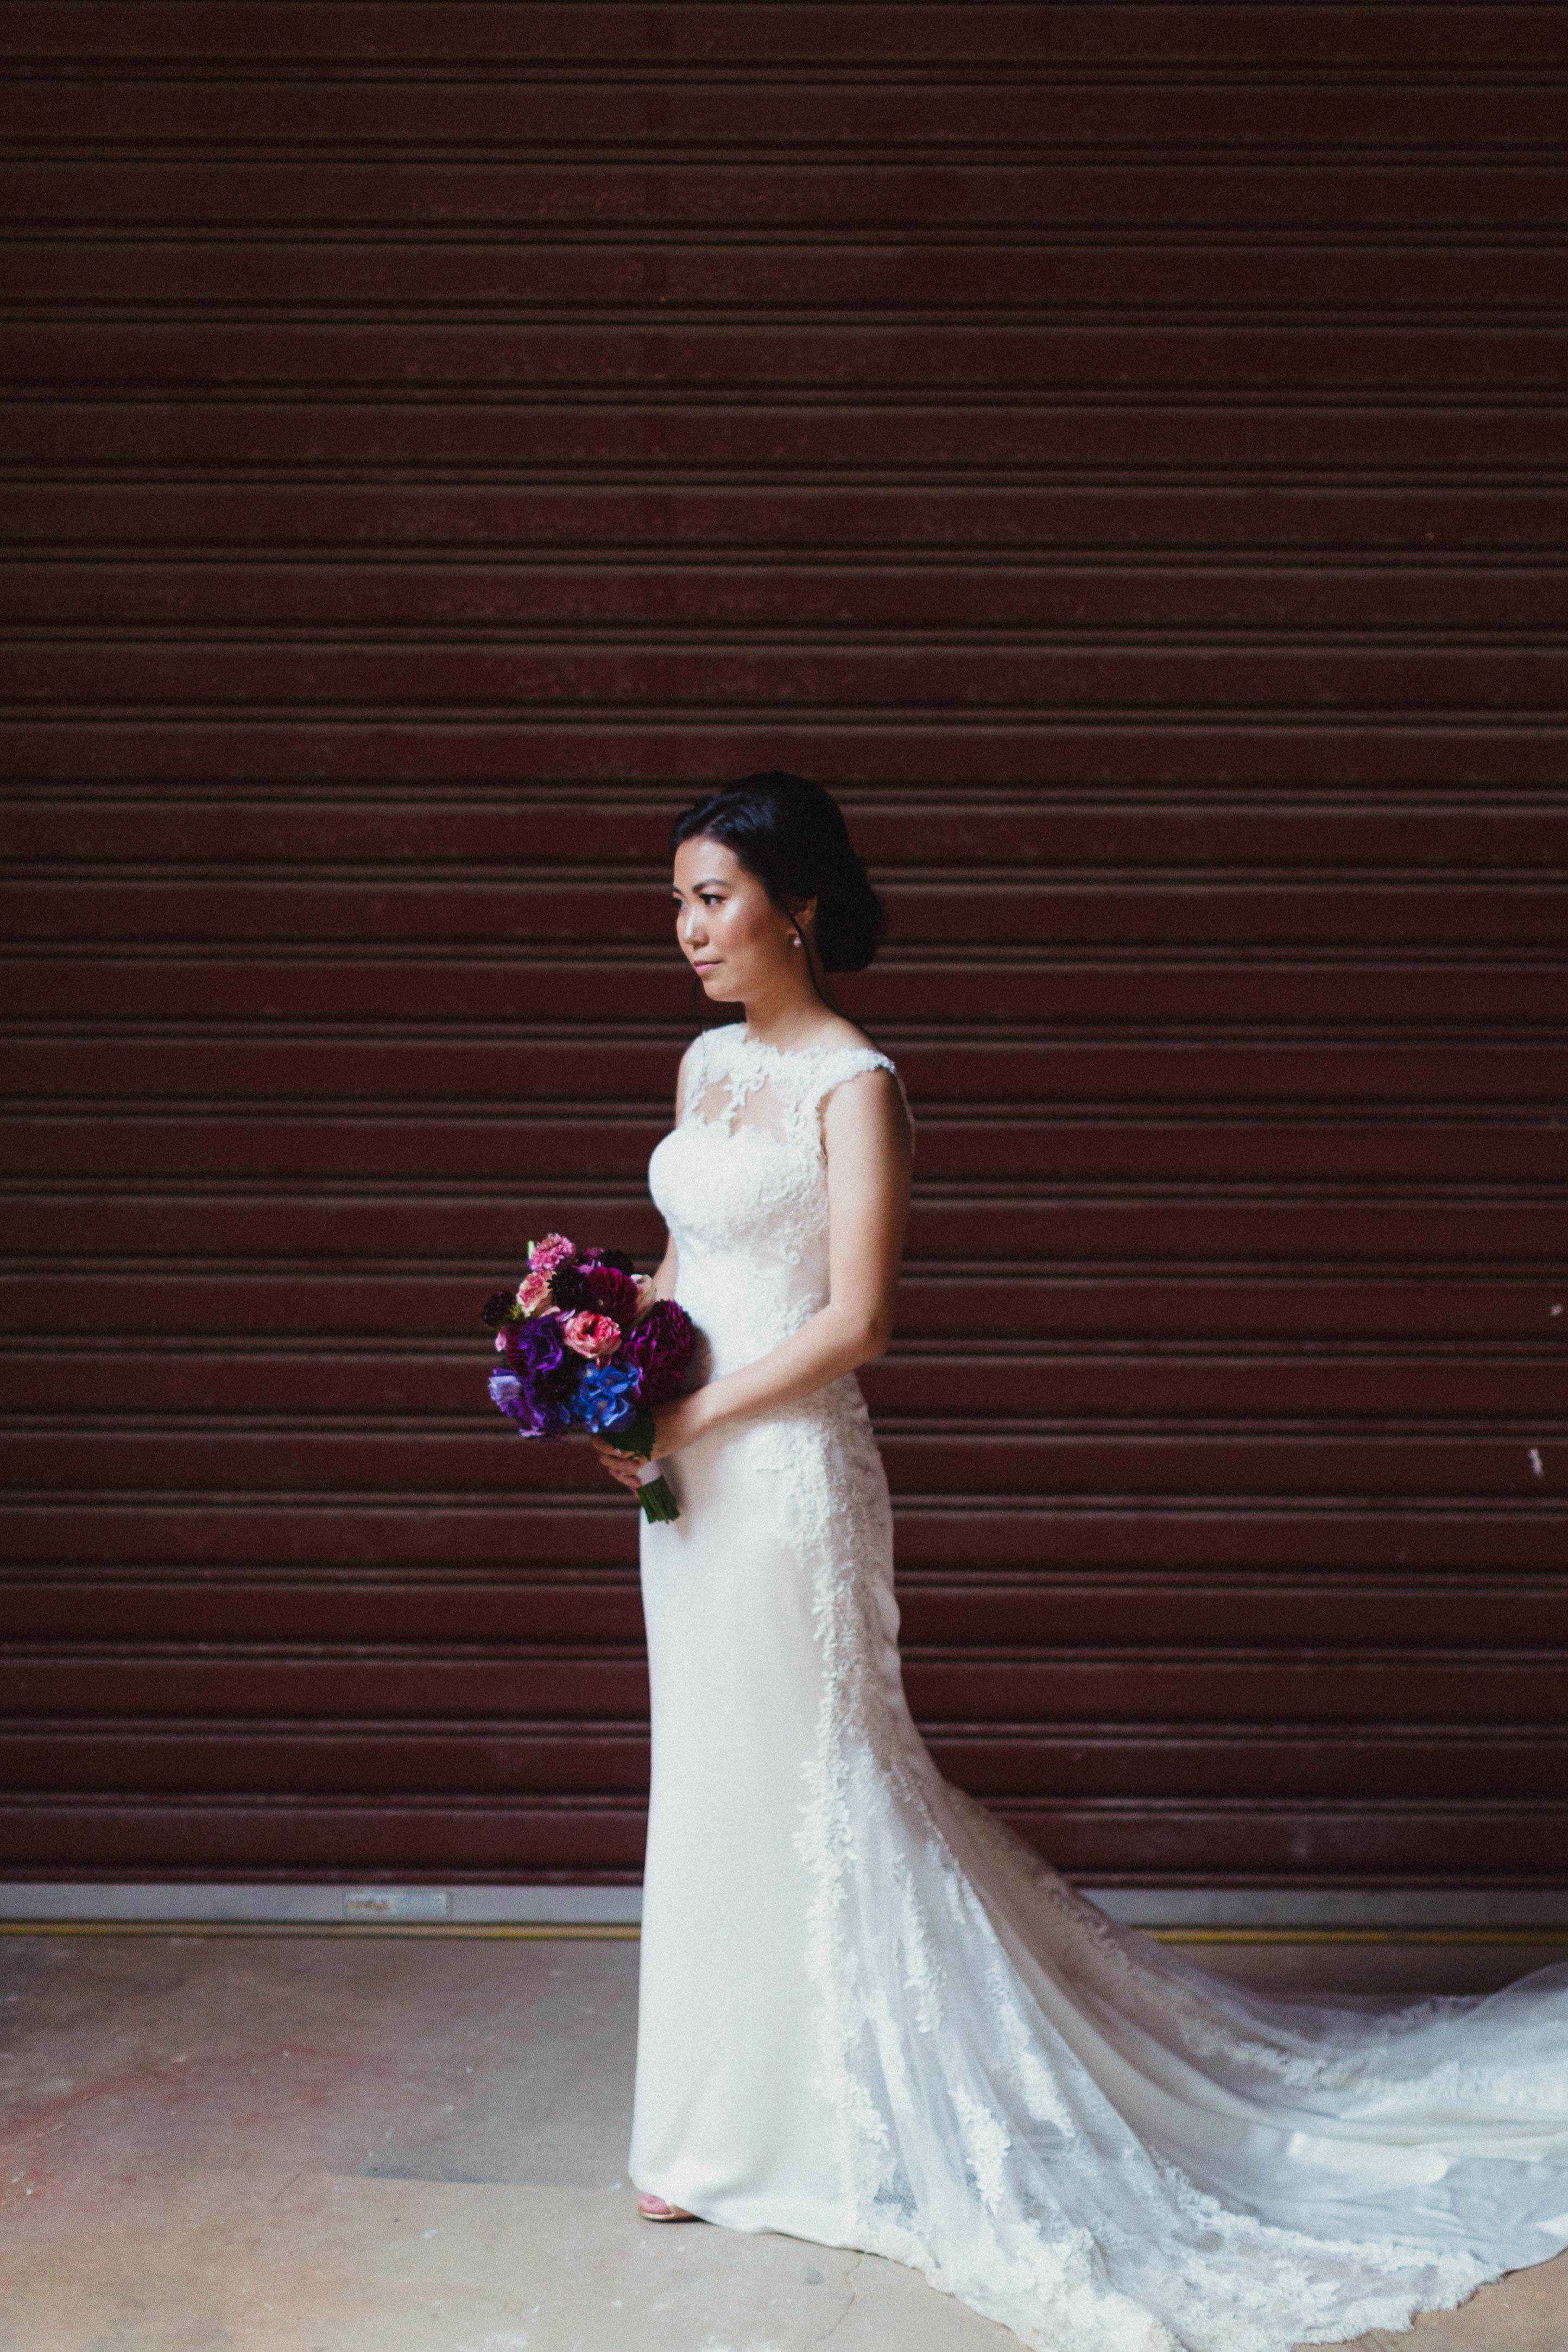 Melbourne-Richmond-Glasshaus-Wedding-bride-portrait-acca